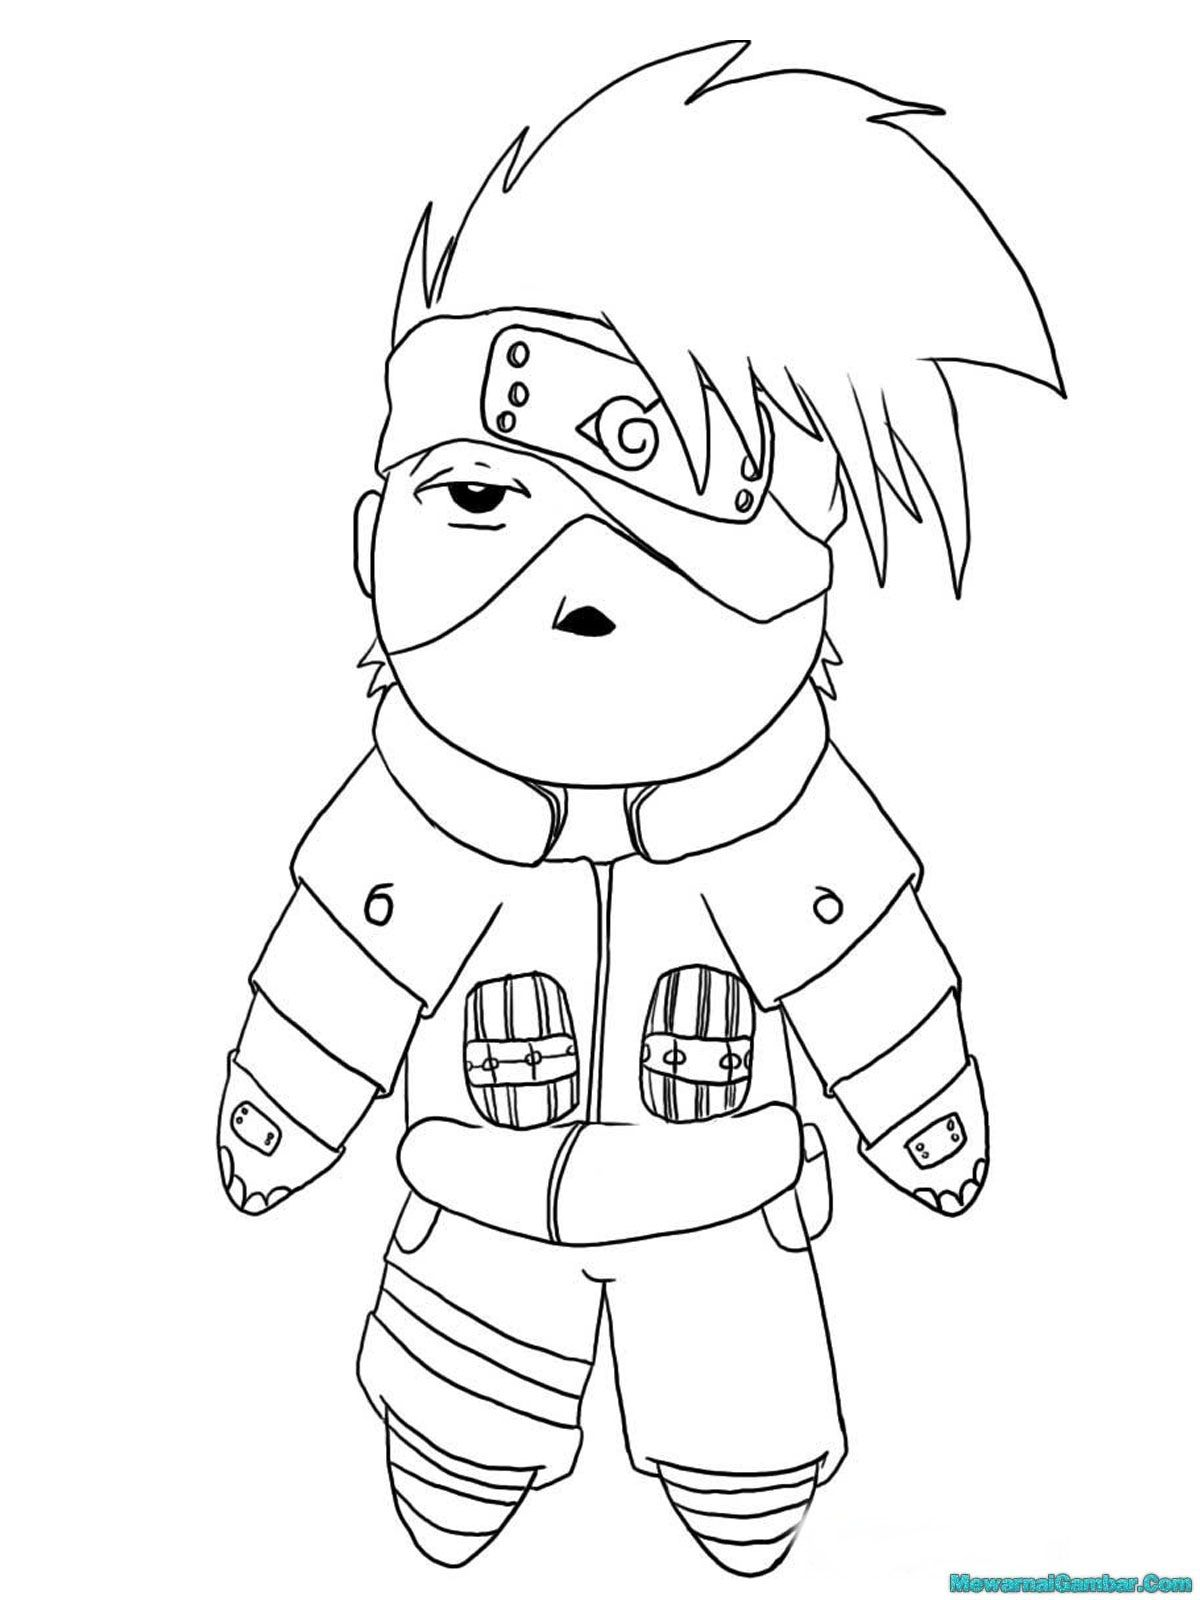 kakashi printable kids coloring pages naruto shippuden jpg 1200